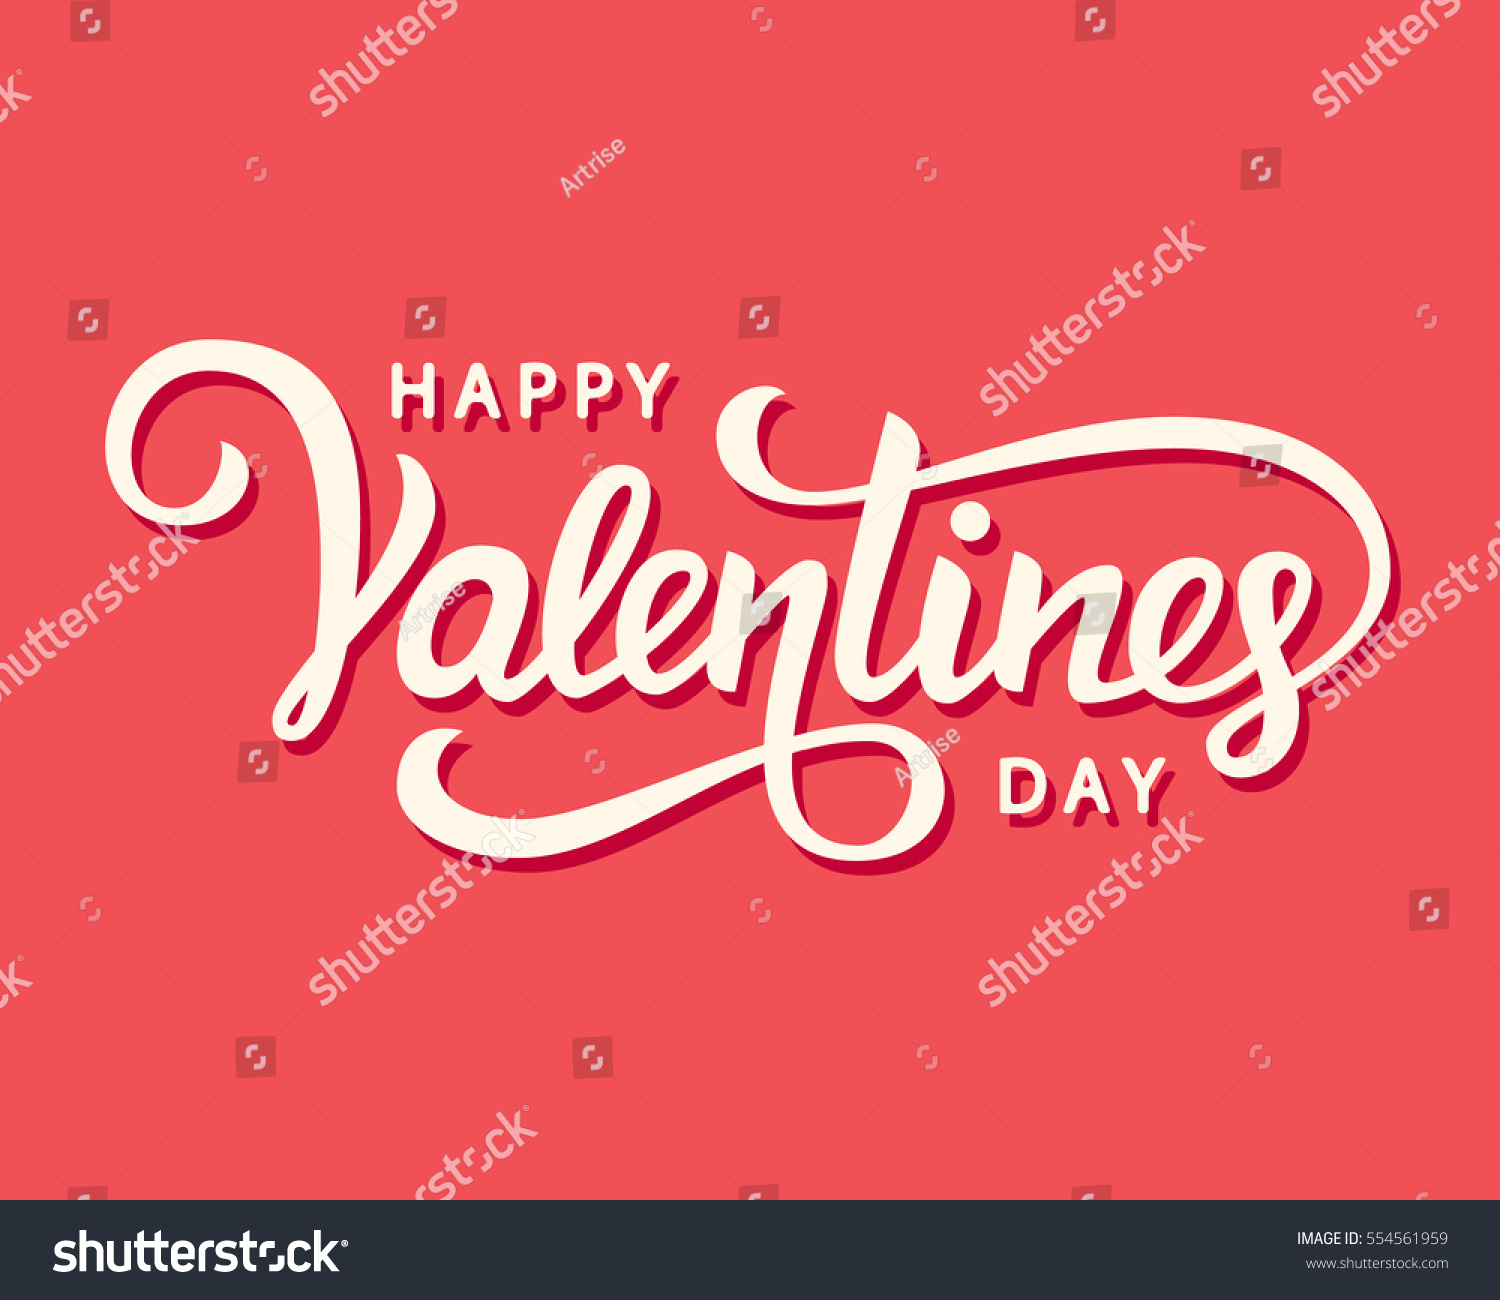 happy valentines day romantic greeting card stock vector royalty